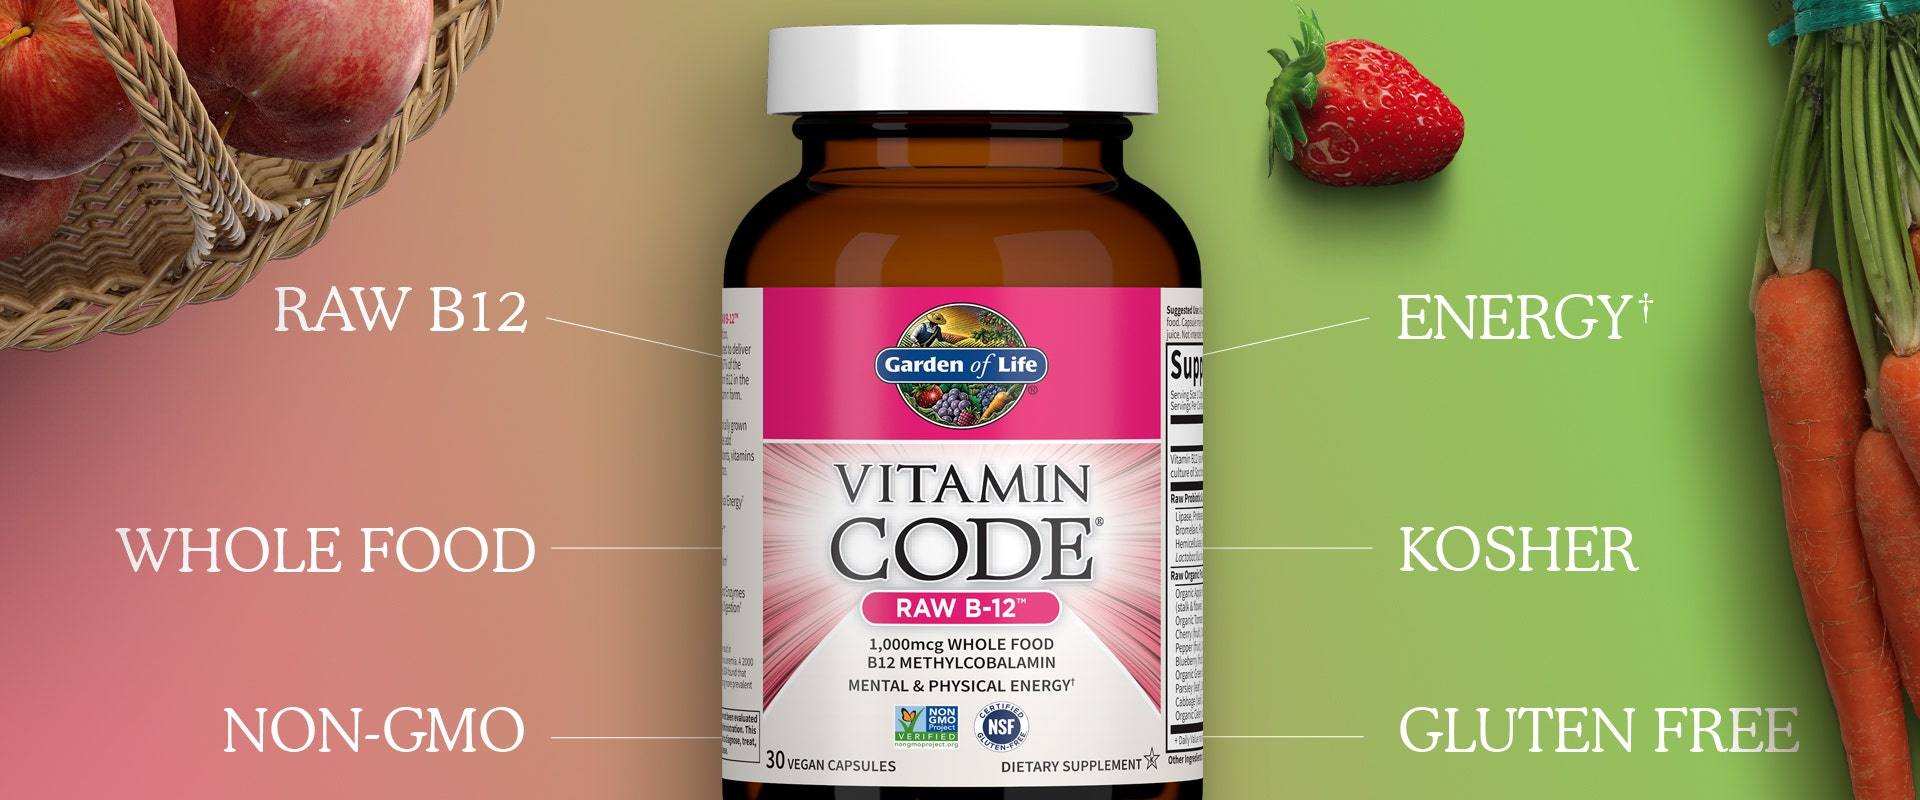 Vitamin D 5,000 IU by Garden of Life Vitamin Code